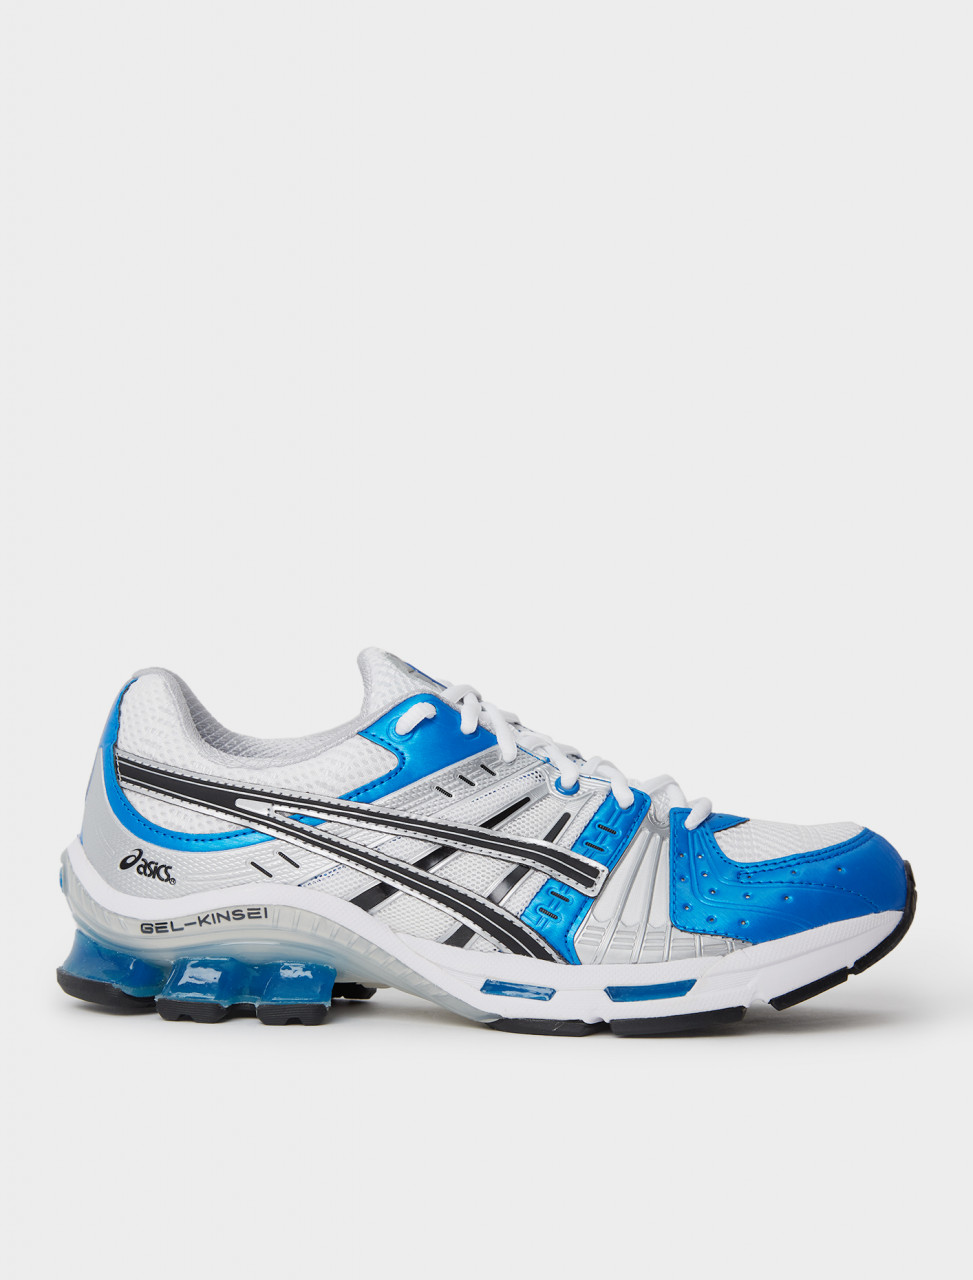 1021A117-400 ASICS GEL KINSEI OG BLUE BLACK